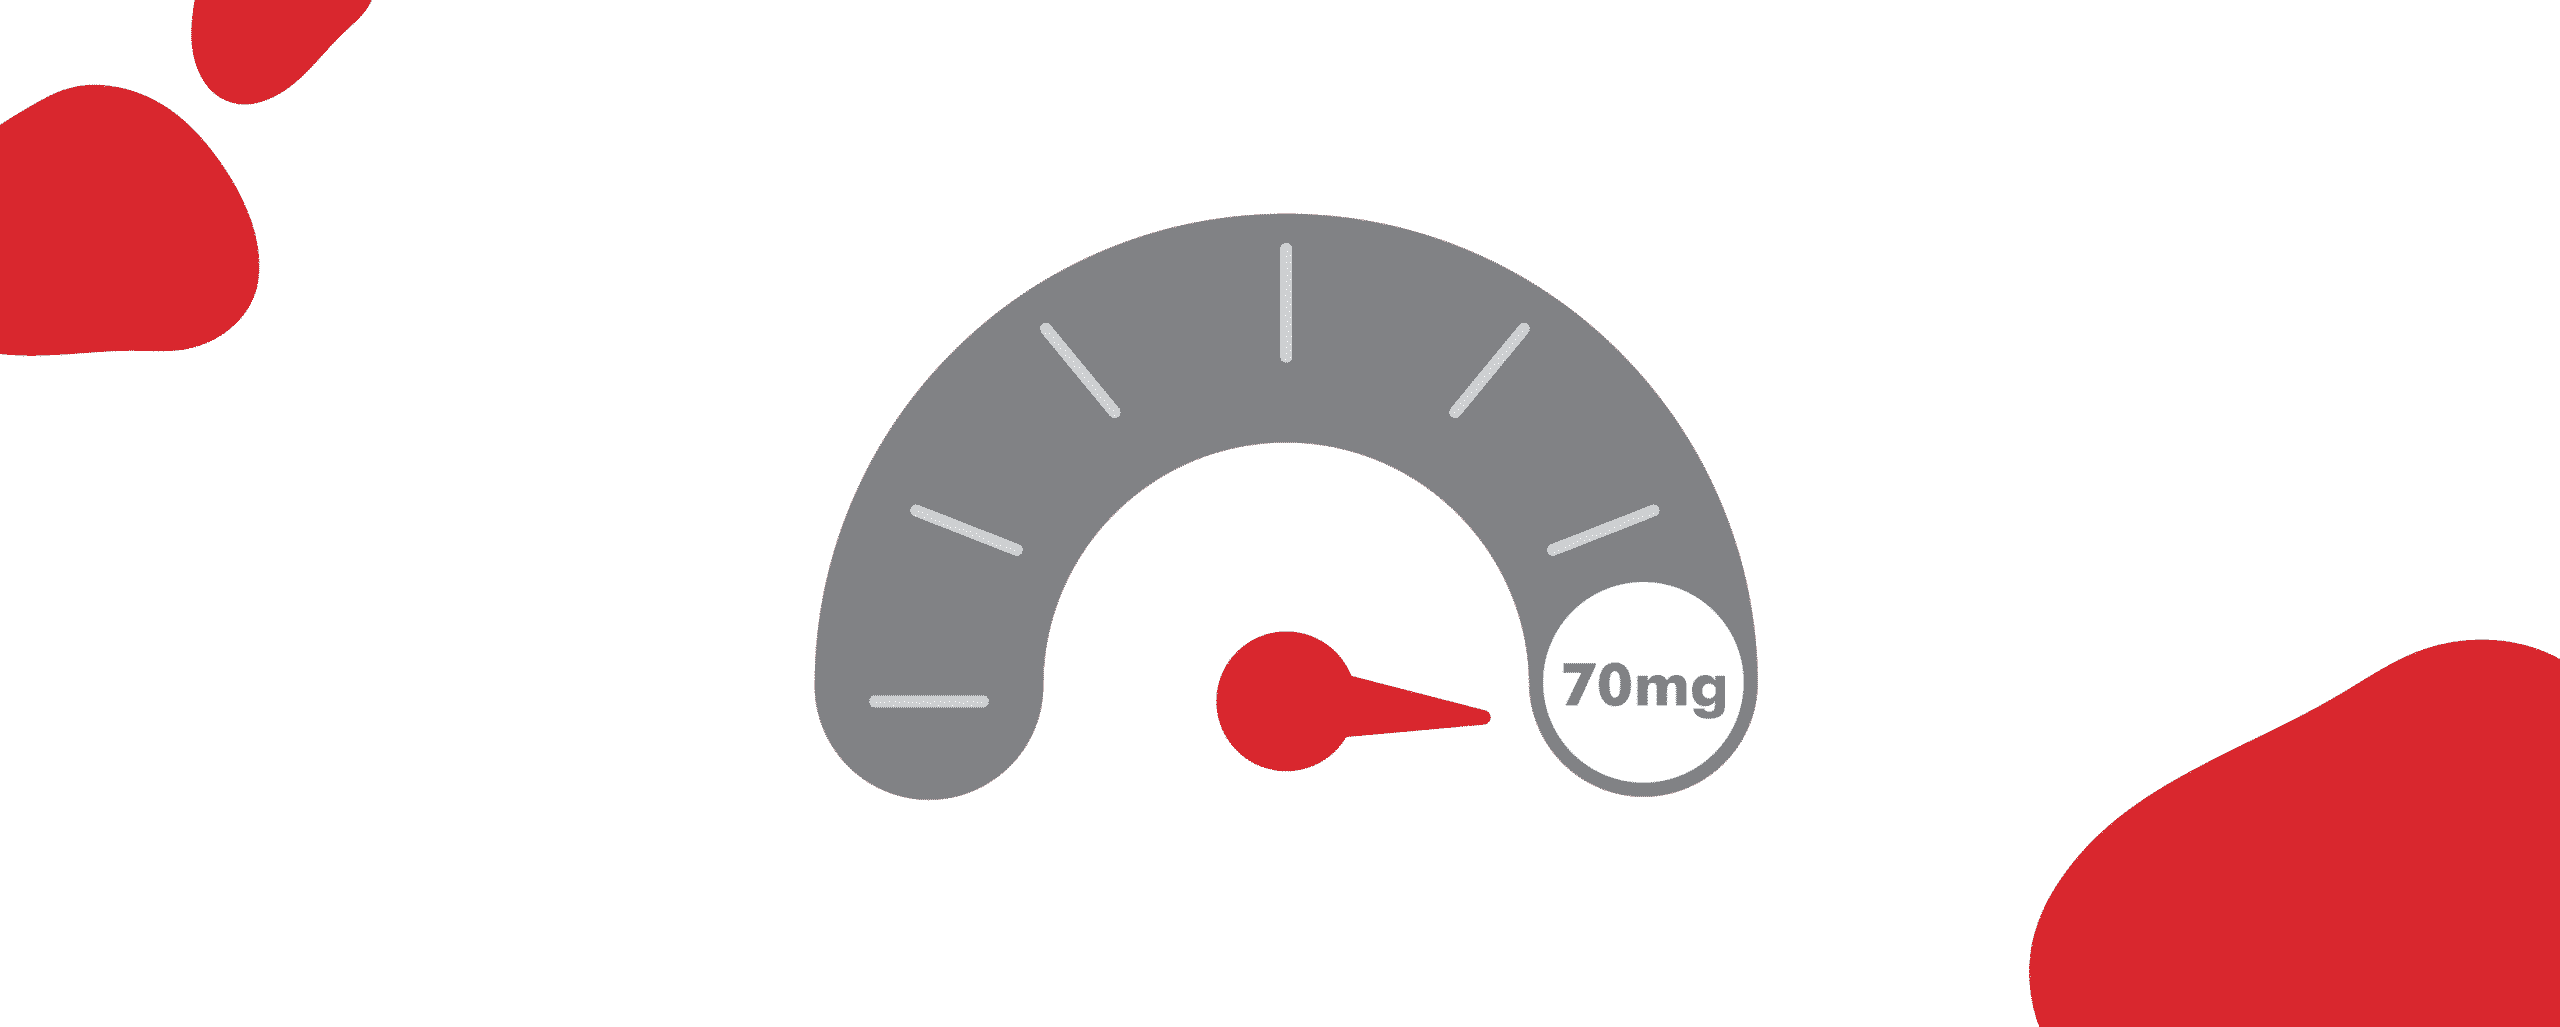 Scale illustration showing the highest pointer at 70mg of CBD.